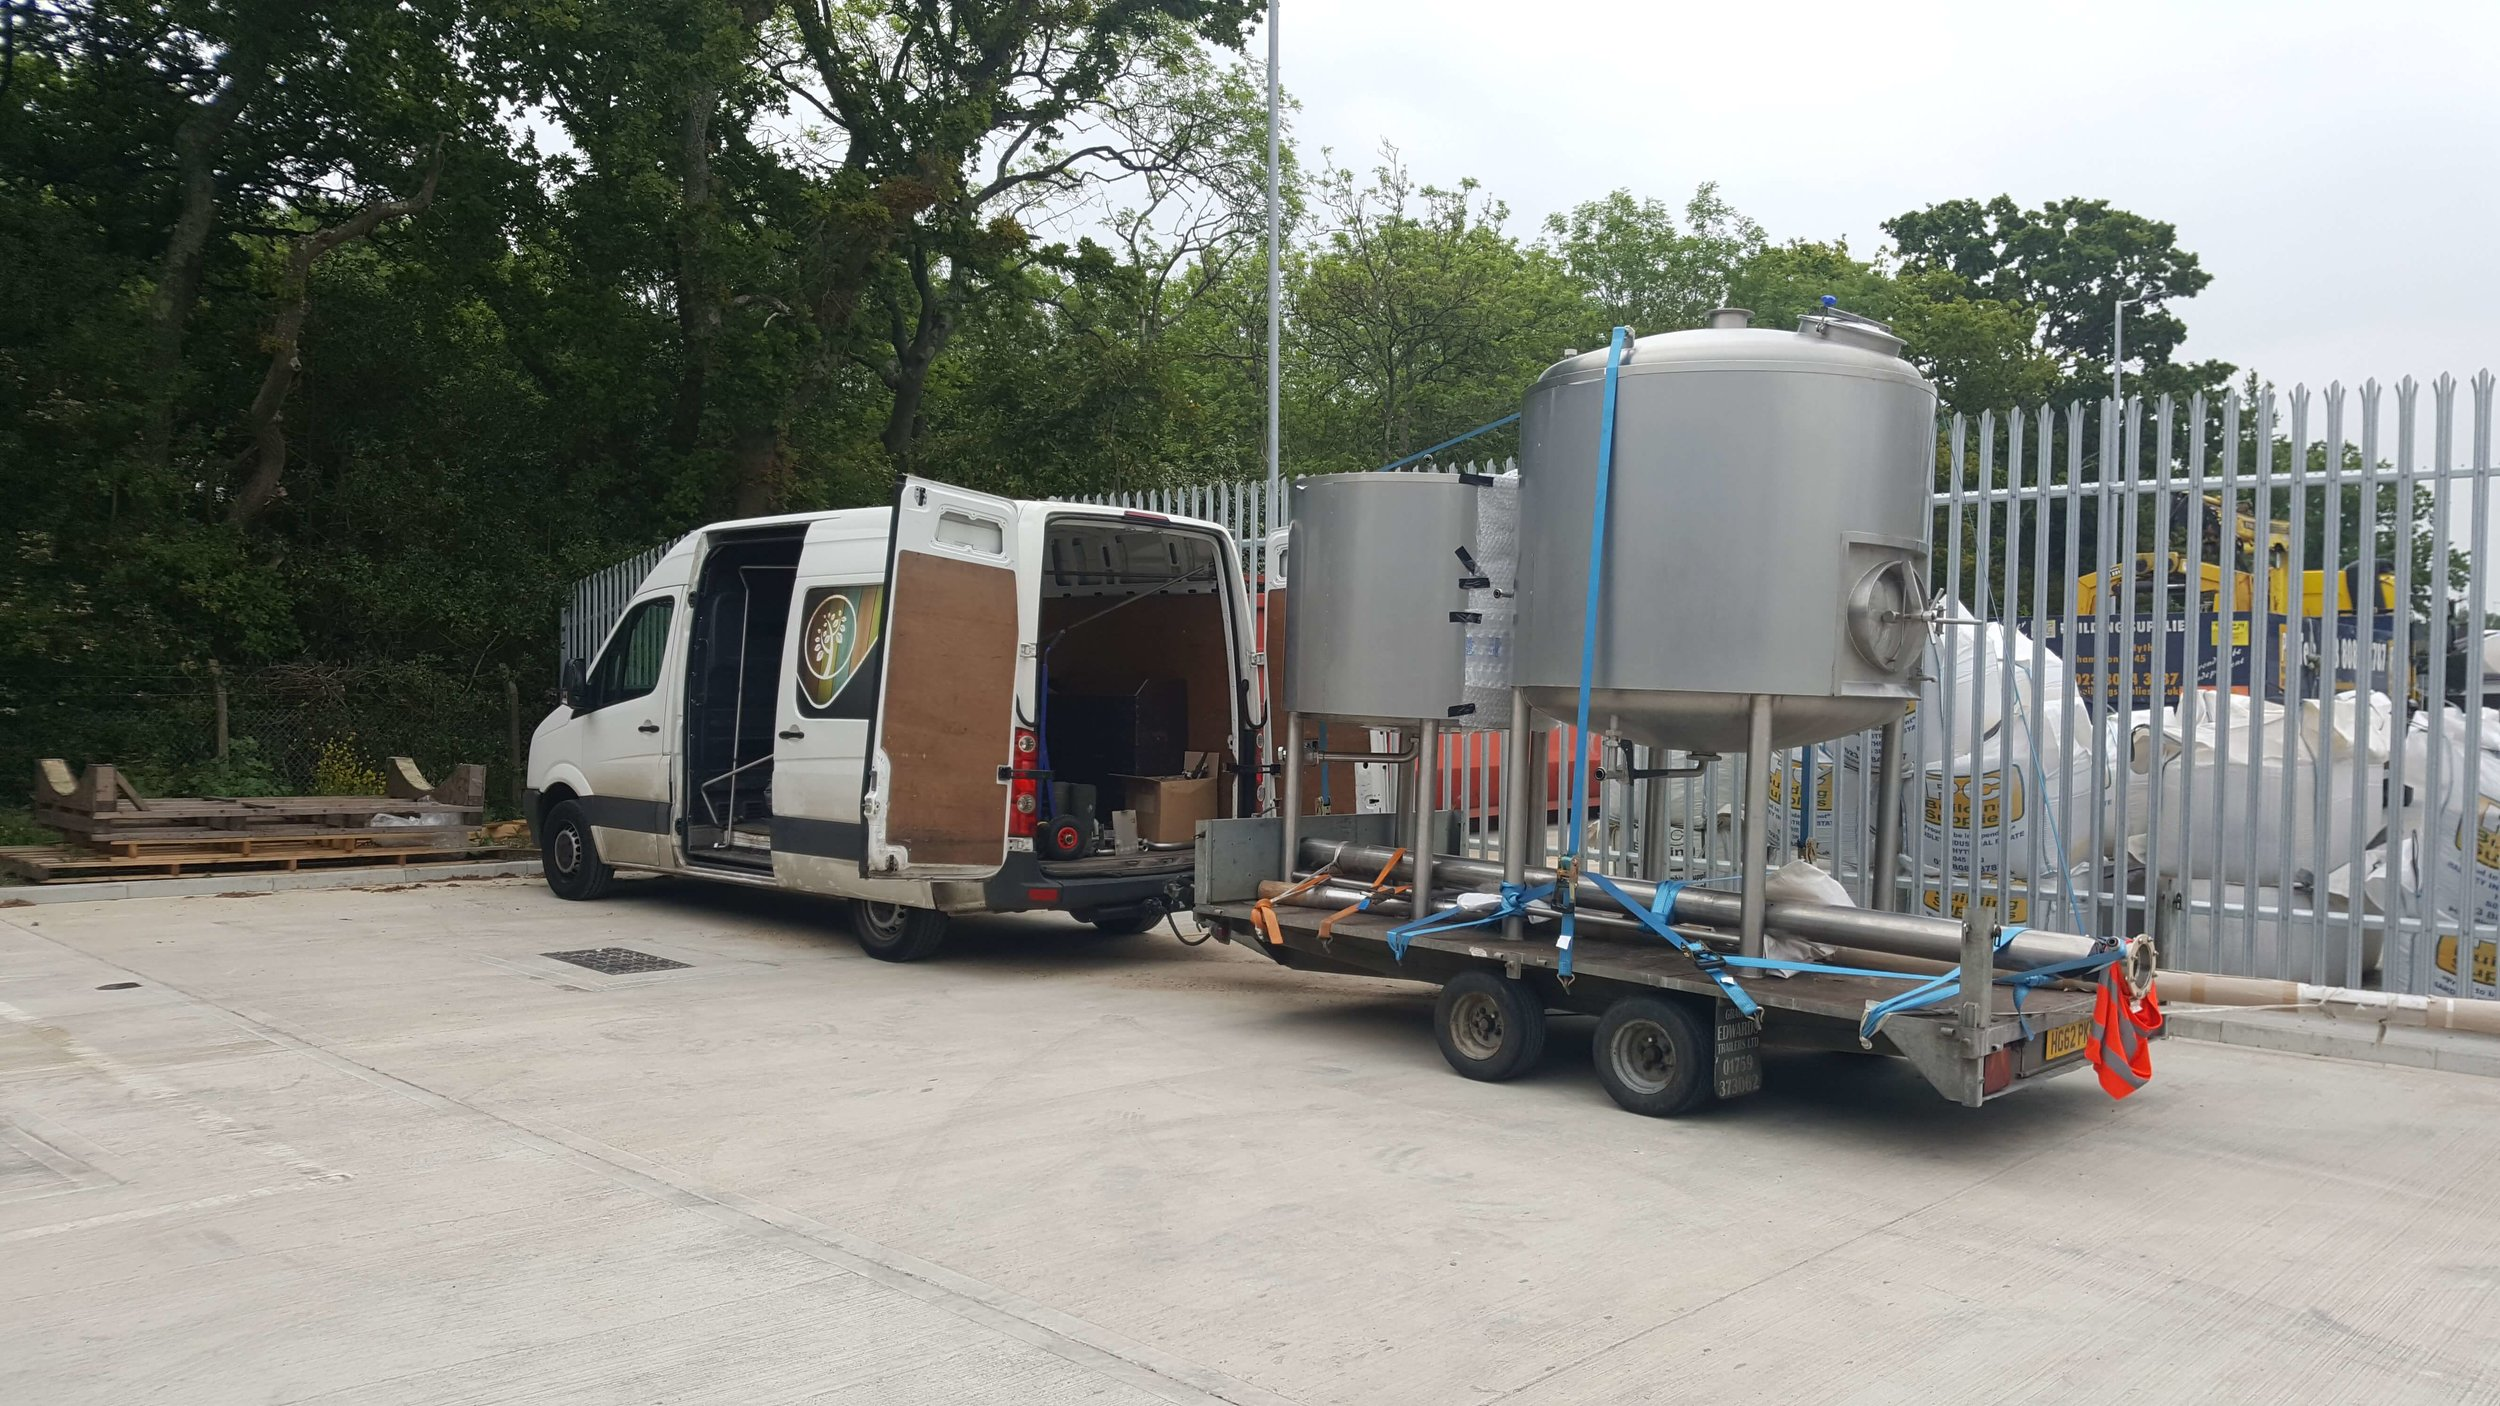 - mash tun and copper arrive